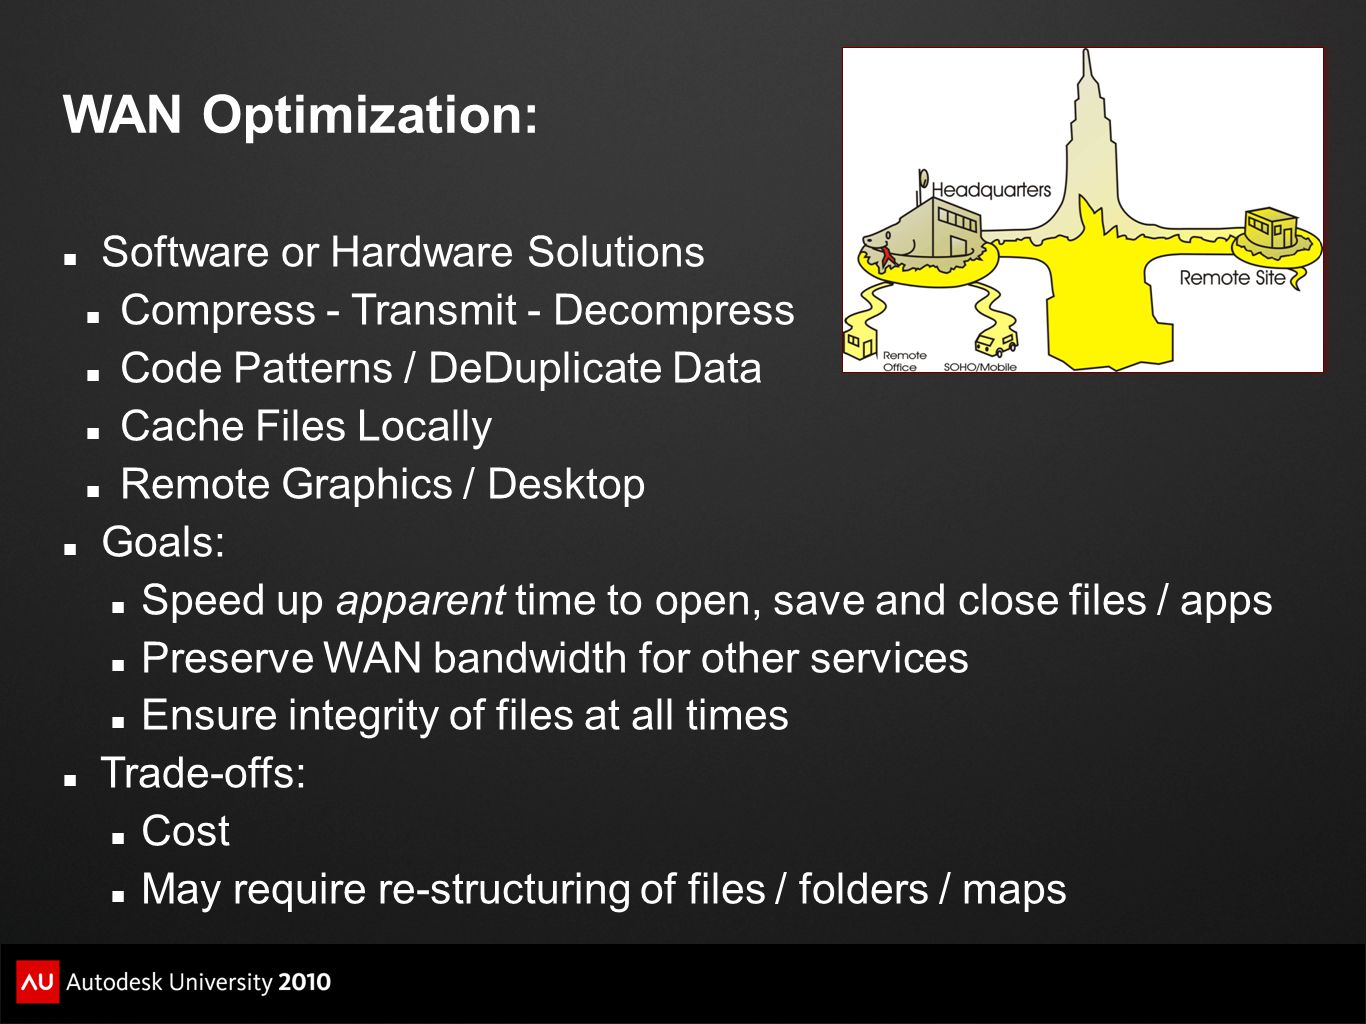 WAN Optimization: Software or Hardware Solutions Compress - Transmit - Decompress Code Patterns / DeDuplicate Data Cache Files Locally Remote Graphics / Desktop Goals: Speed up apparent time to open, save and close files / apps Preserve WAN bandwidth for other services Ensure integrity of files at all times Trade-offs: Cost May require re-structuring of files / folders / maps